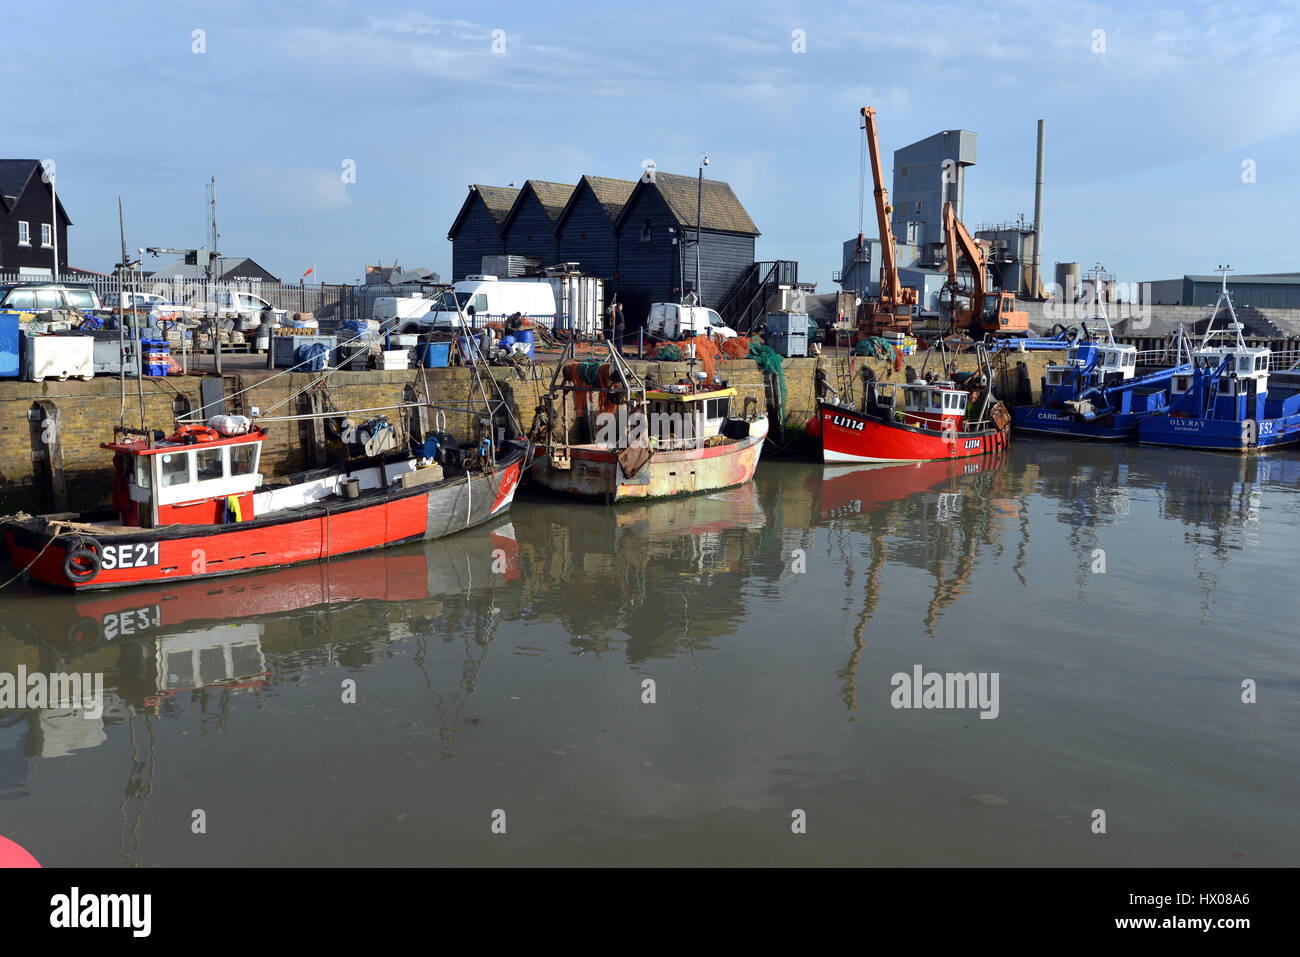 Fishing boats in Whistable Harbour, Kent Stock Photo